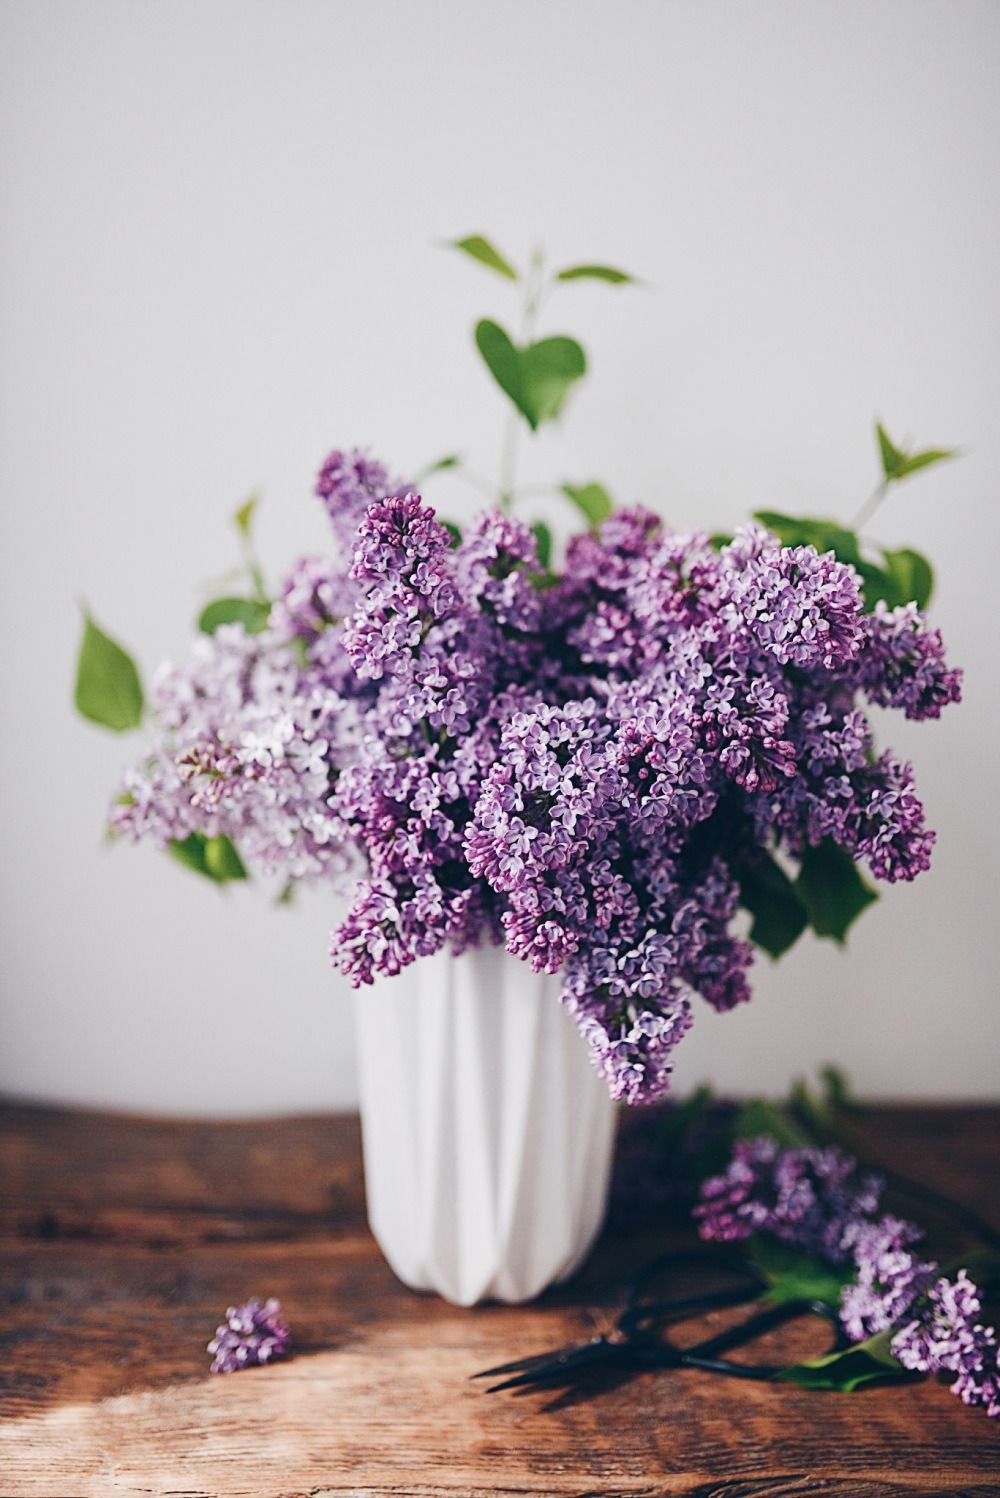 Floralls Lilac By Dominika Brudny In 2020 Lilac Flowers Planting Flowers Flowers Bouquet